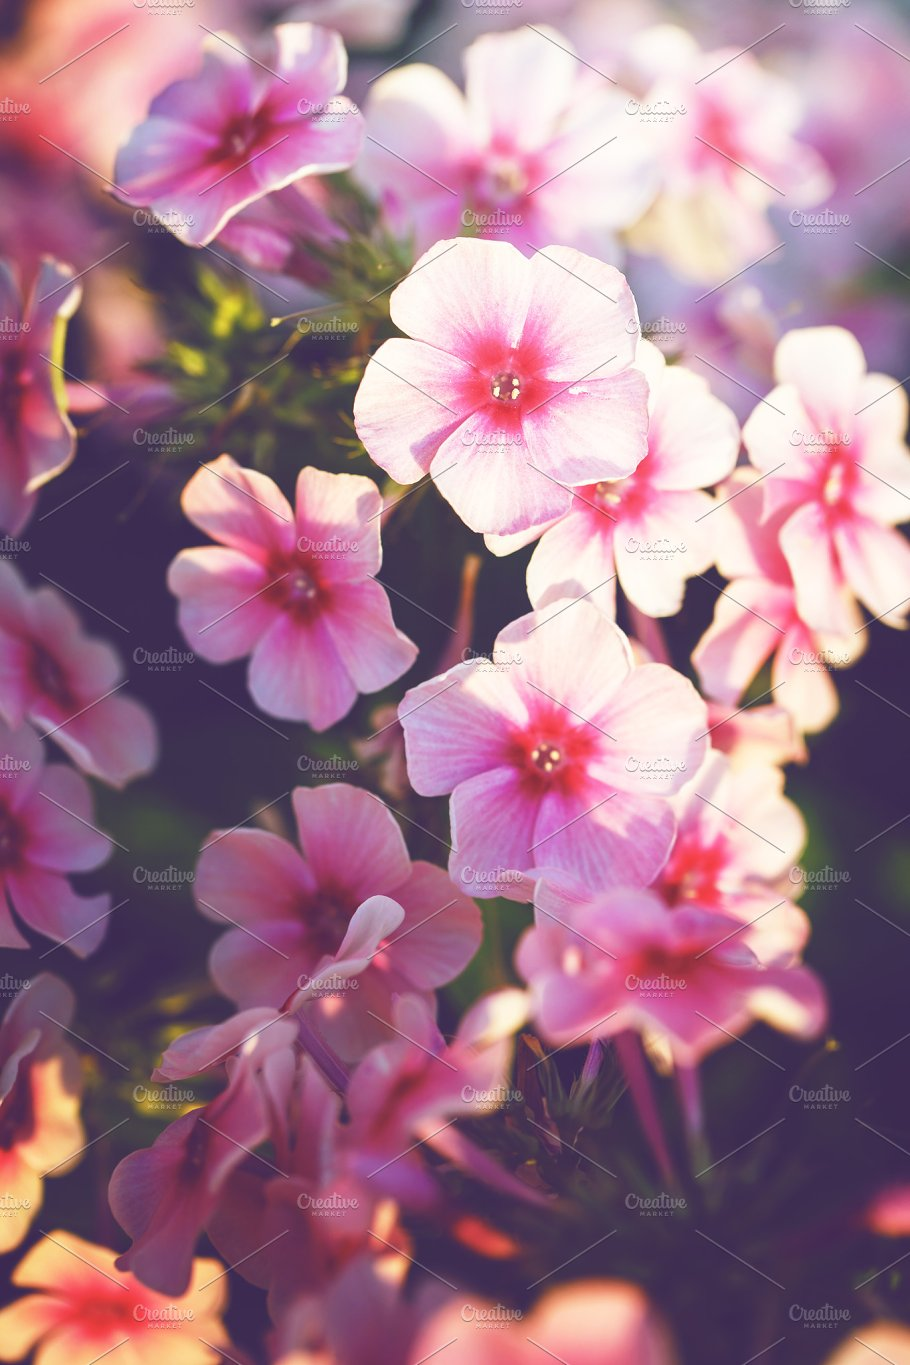 Vintage picture of pink little flowers an morning soft light in vintage picture of pink little flowers an morning soft light in garden flowerbed autumn outdoor nature macro photo mightylinksfo